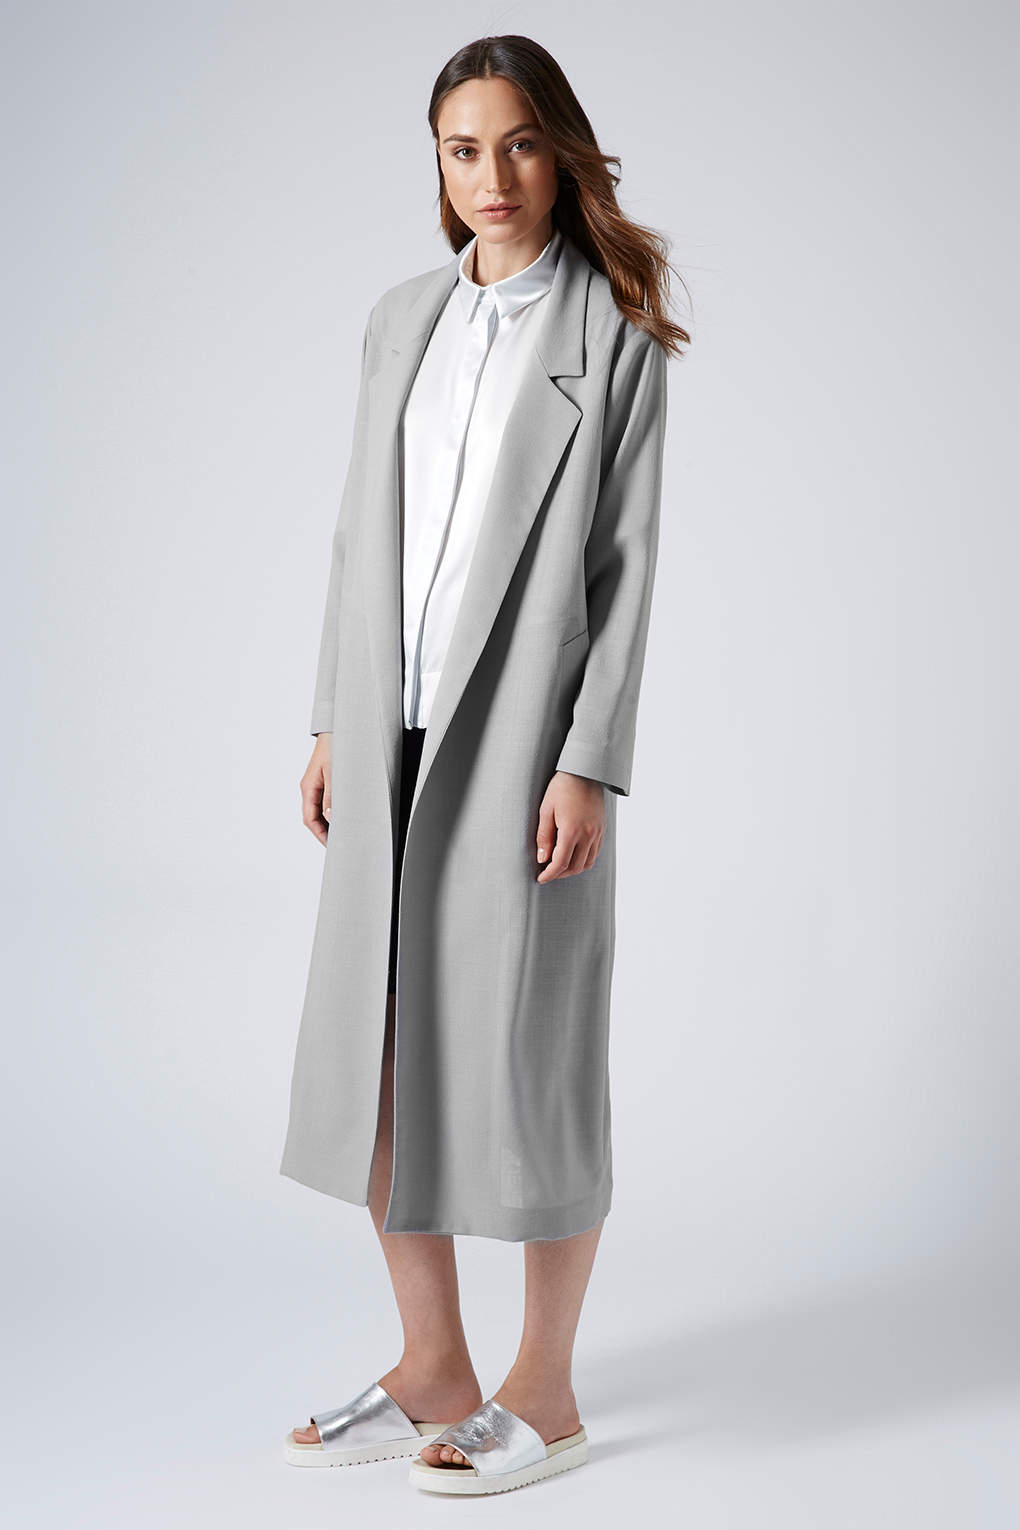 Topshop Summer Light Wool Coat By Boutique in Gray | Lyst